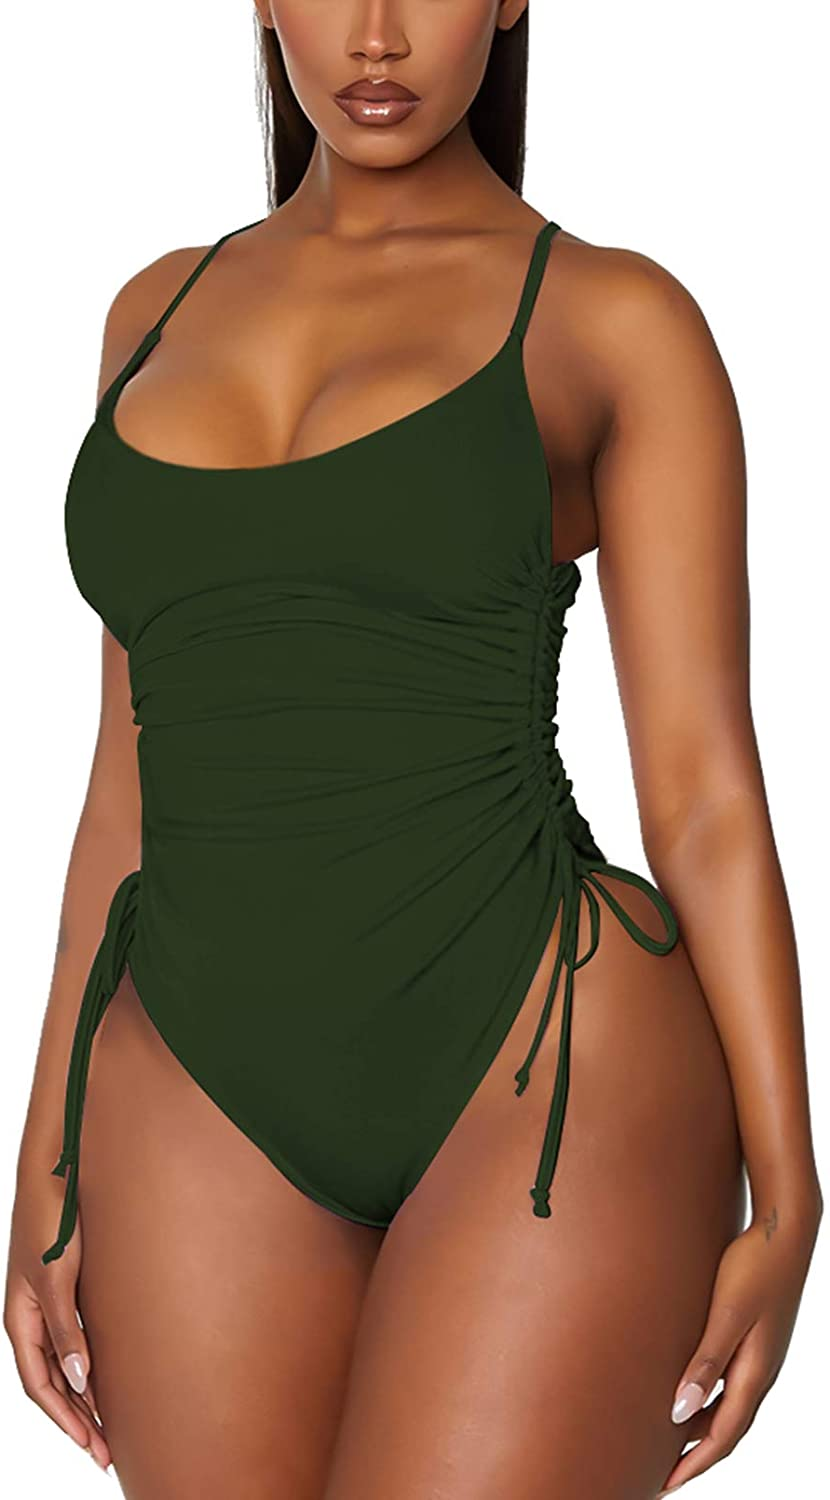 TEWWEY Women's Tummy Control One Piece Swimsuits Ruched Bottom Drawstring Bathing Suits Swimwear